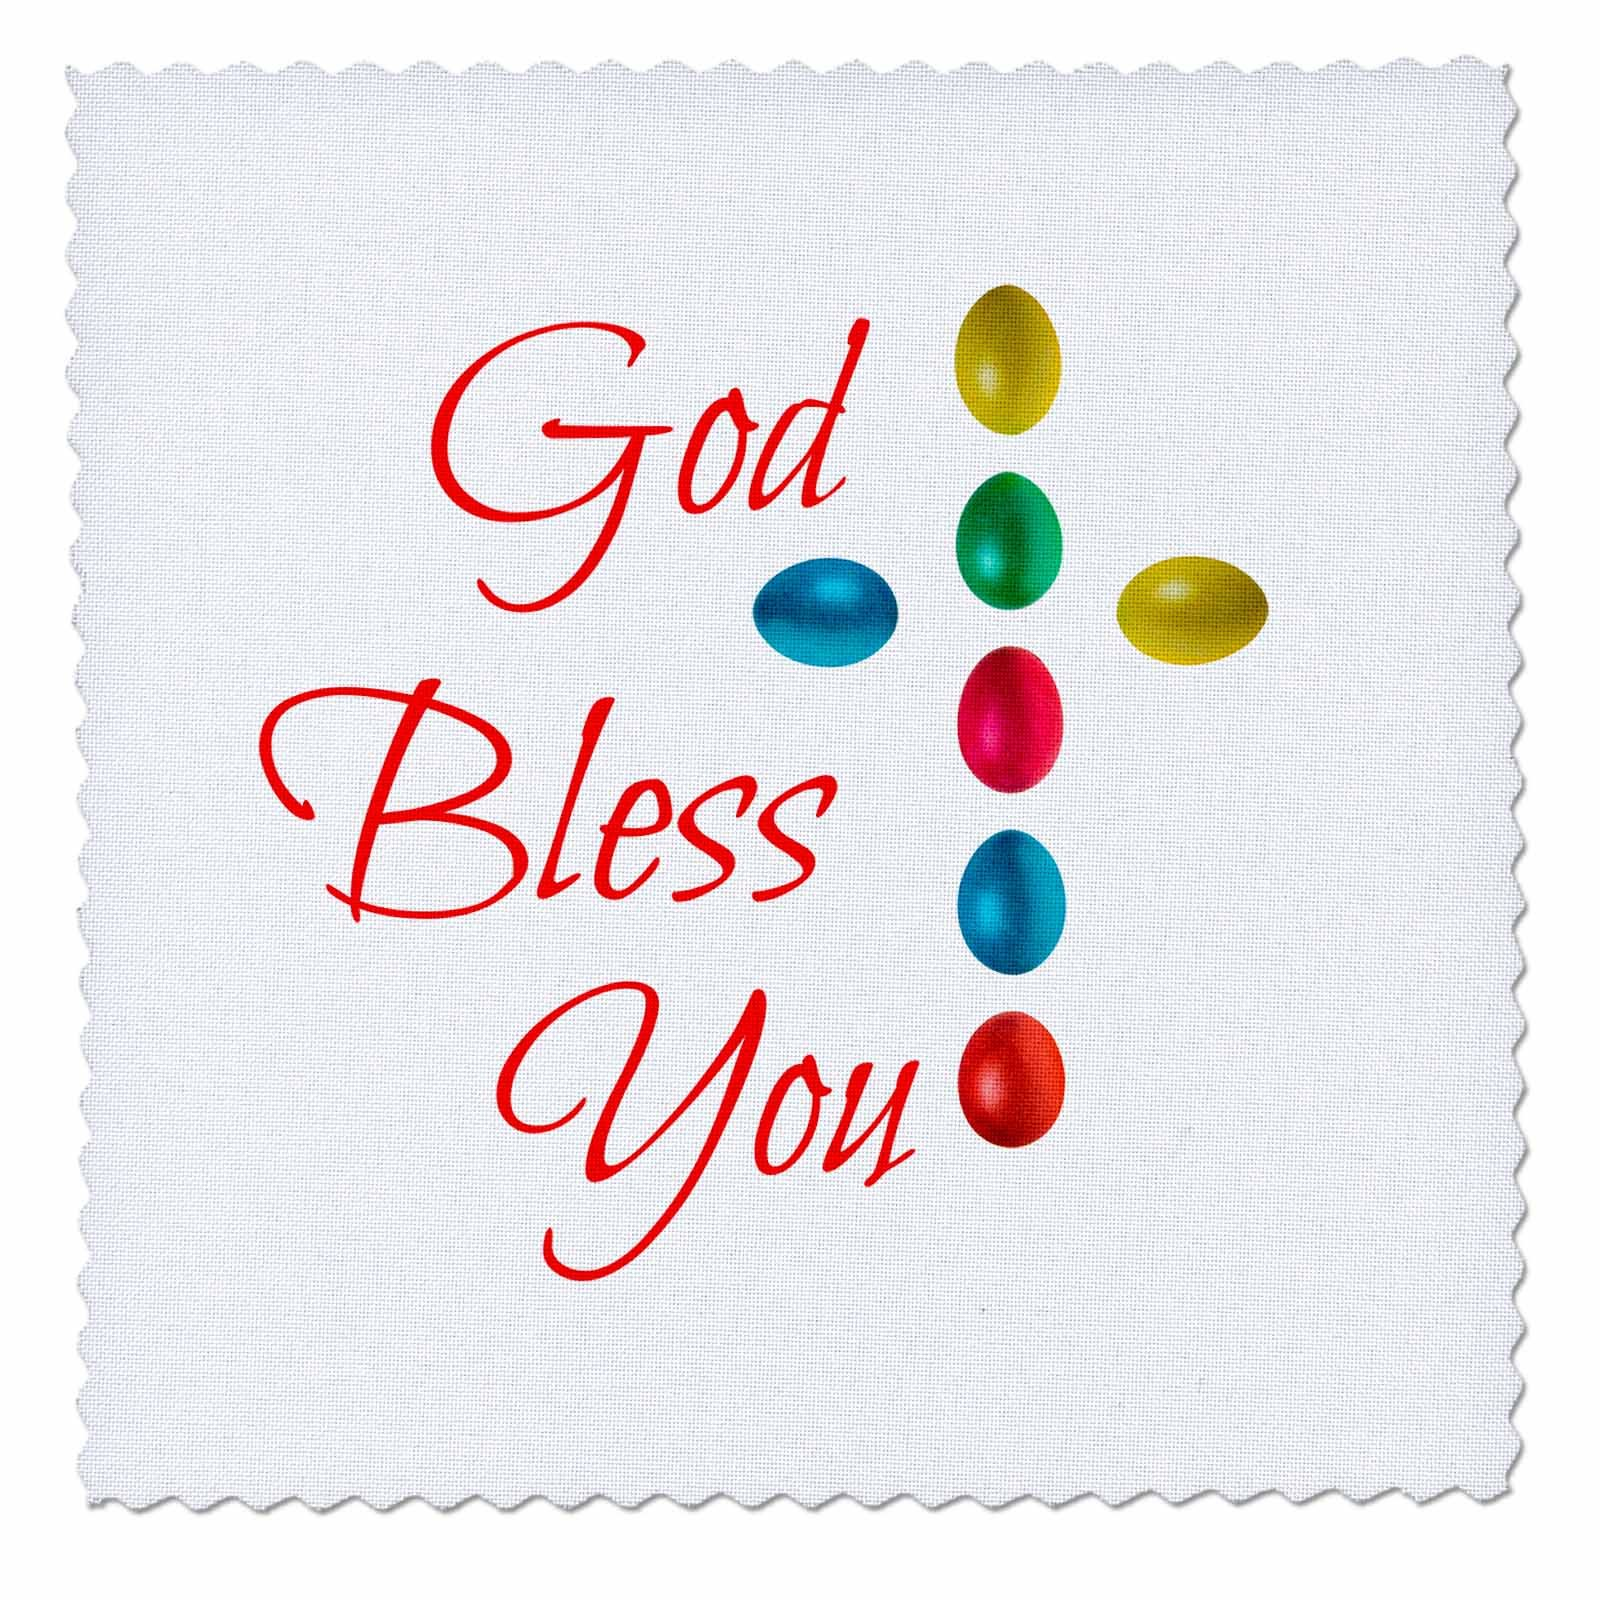 3dRose Alexis Design - Holidays Easter - God bless you text and cross of colorful Easter eggs on white - 12x12 inch quilt square (qs_271651_4) by 3dRose